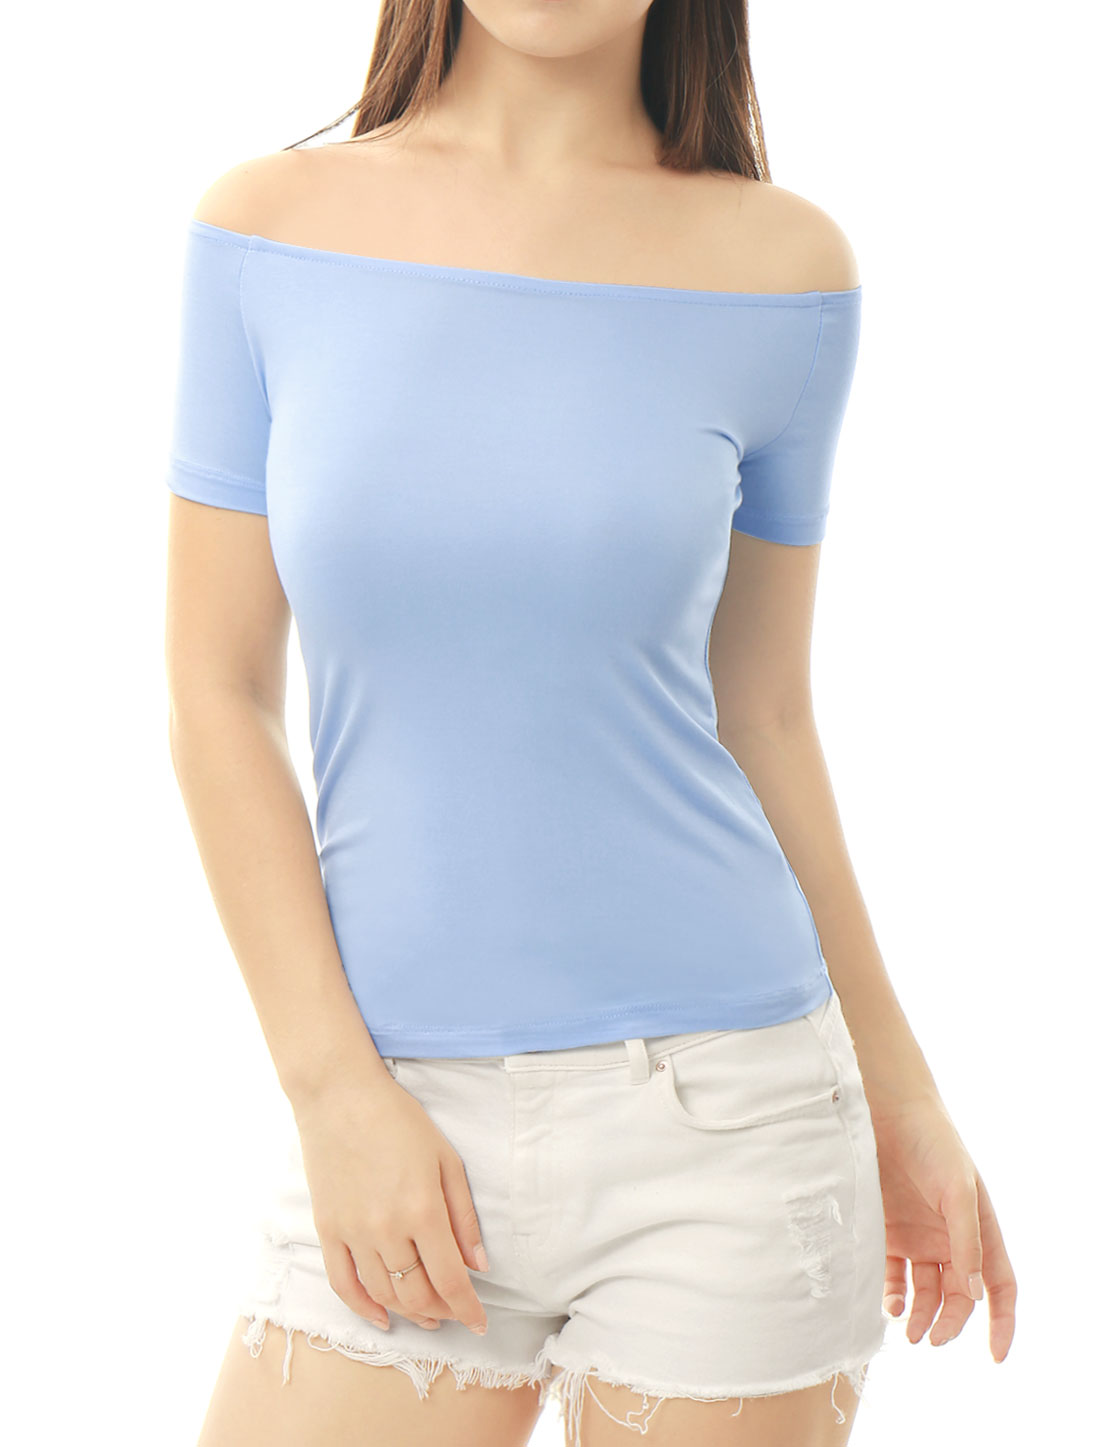 Women Short Sleeves Slim Fit Off the Shoulder Top Light Blue XS